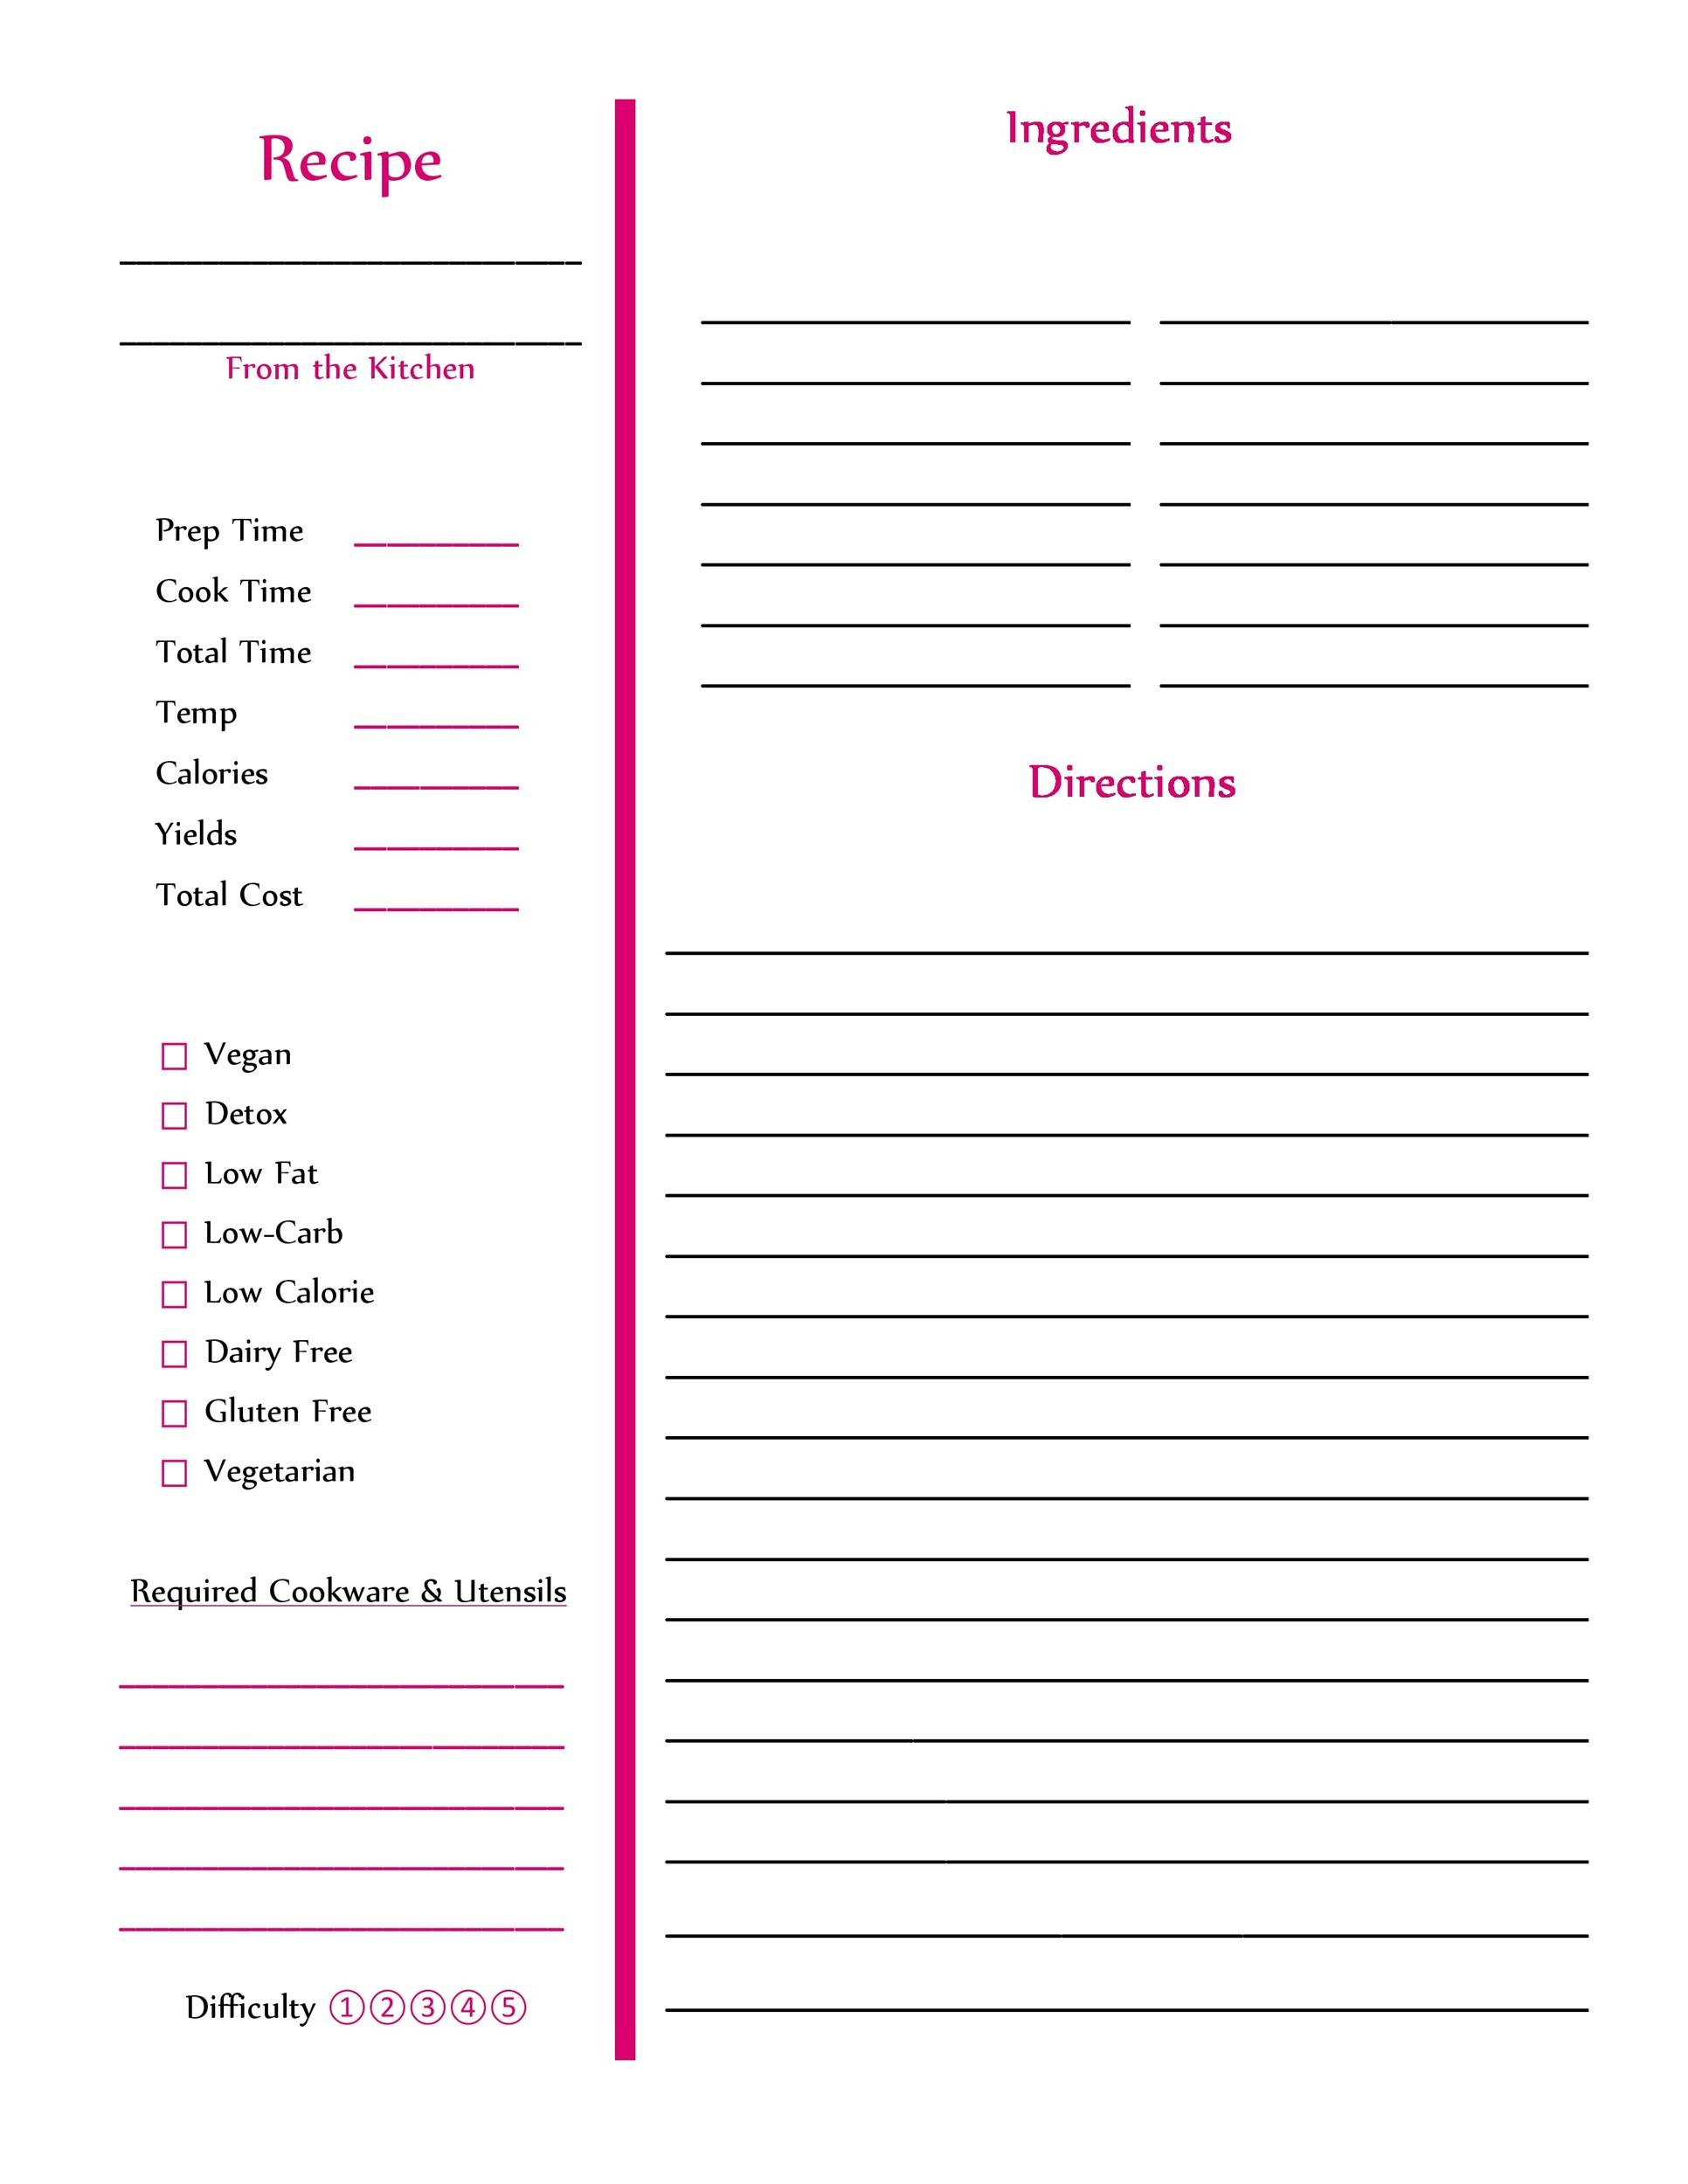 Free Editable Recipe Page Templates For Microsoft Word For Full Page Recipe Template For Word